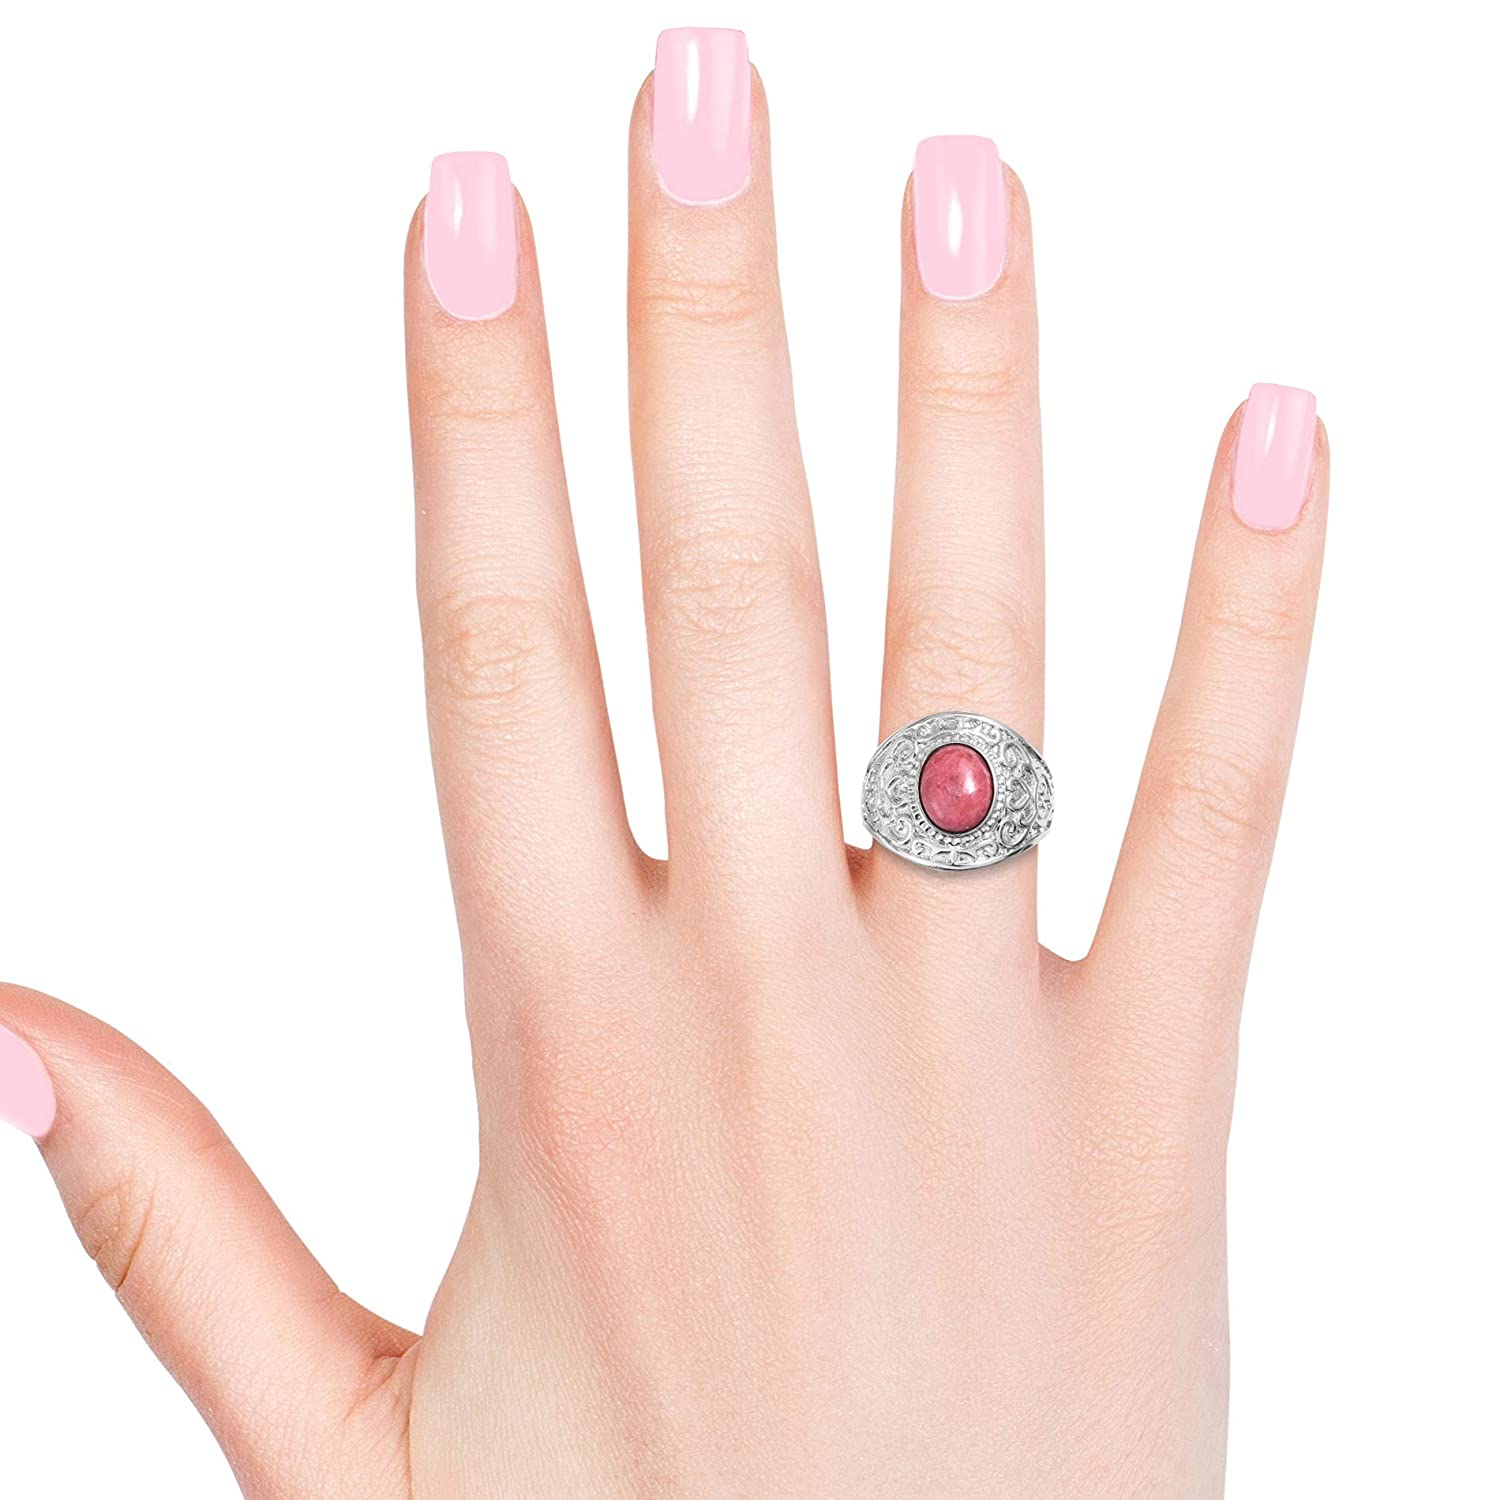 Shop LC Delivering Joy Solitaire Ring Stainless Steel Oval Thulite Jewelry for Women Size 5